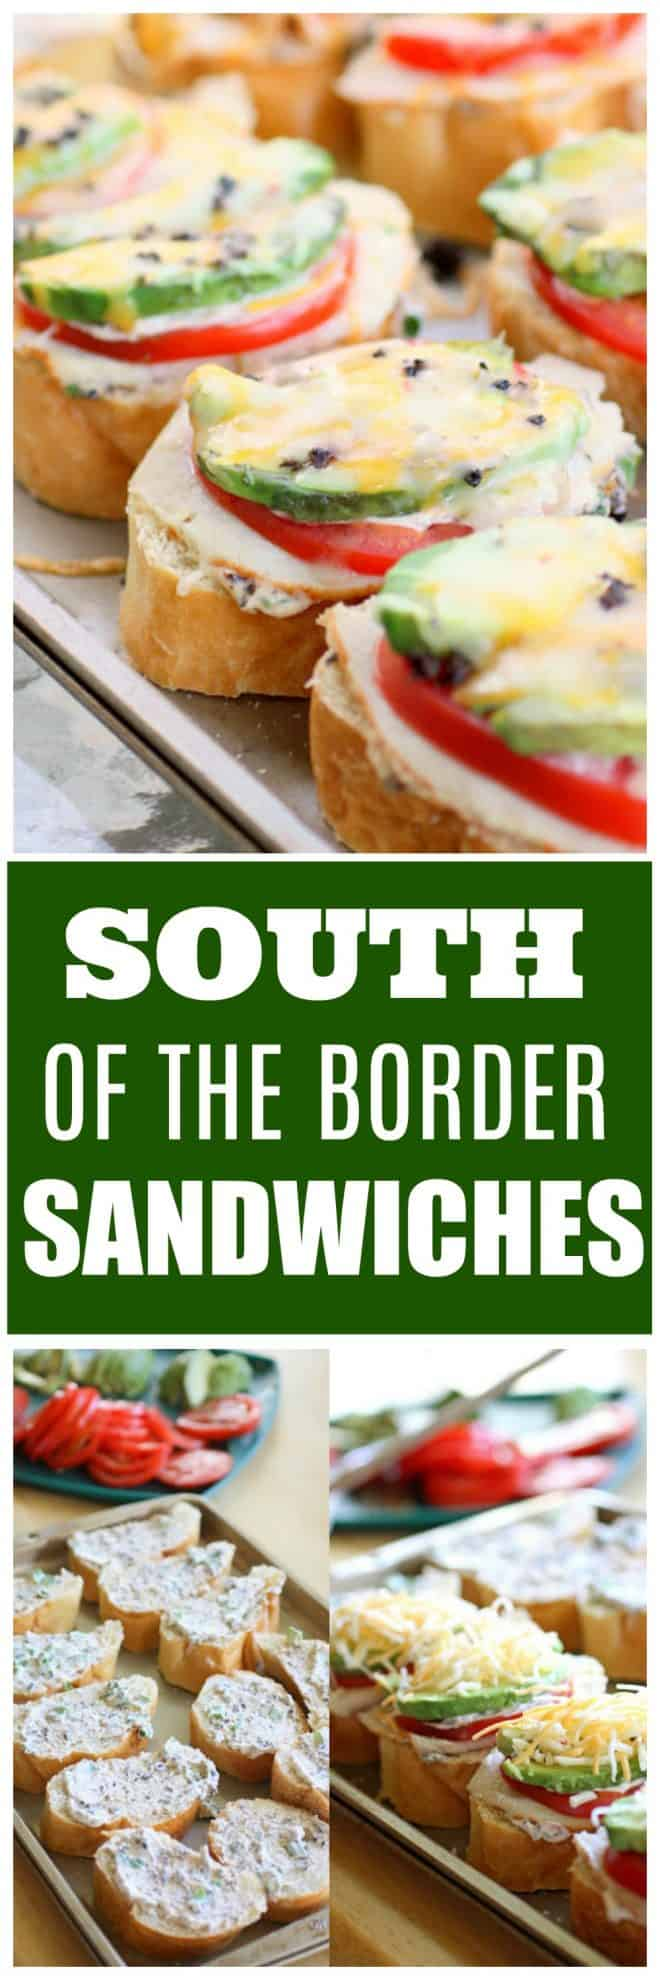 South of the Border Sandwiches